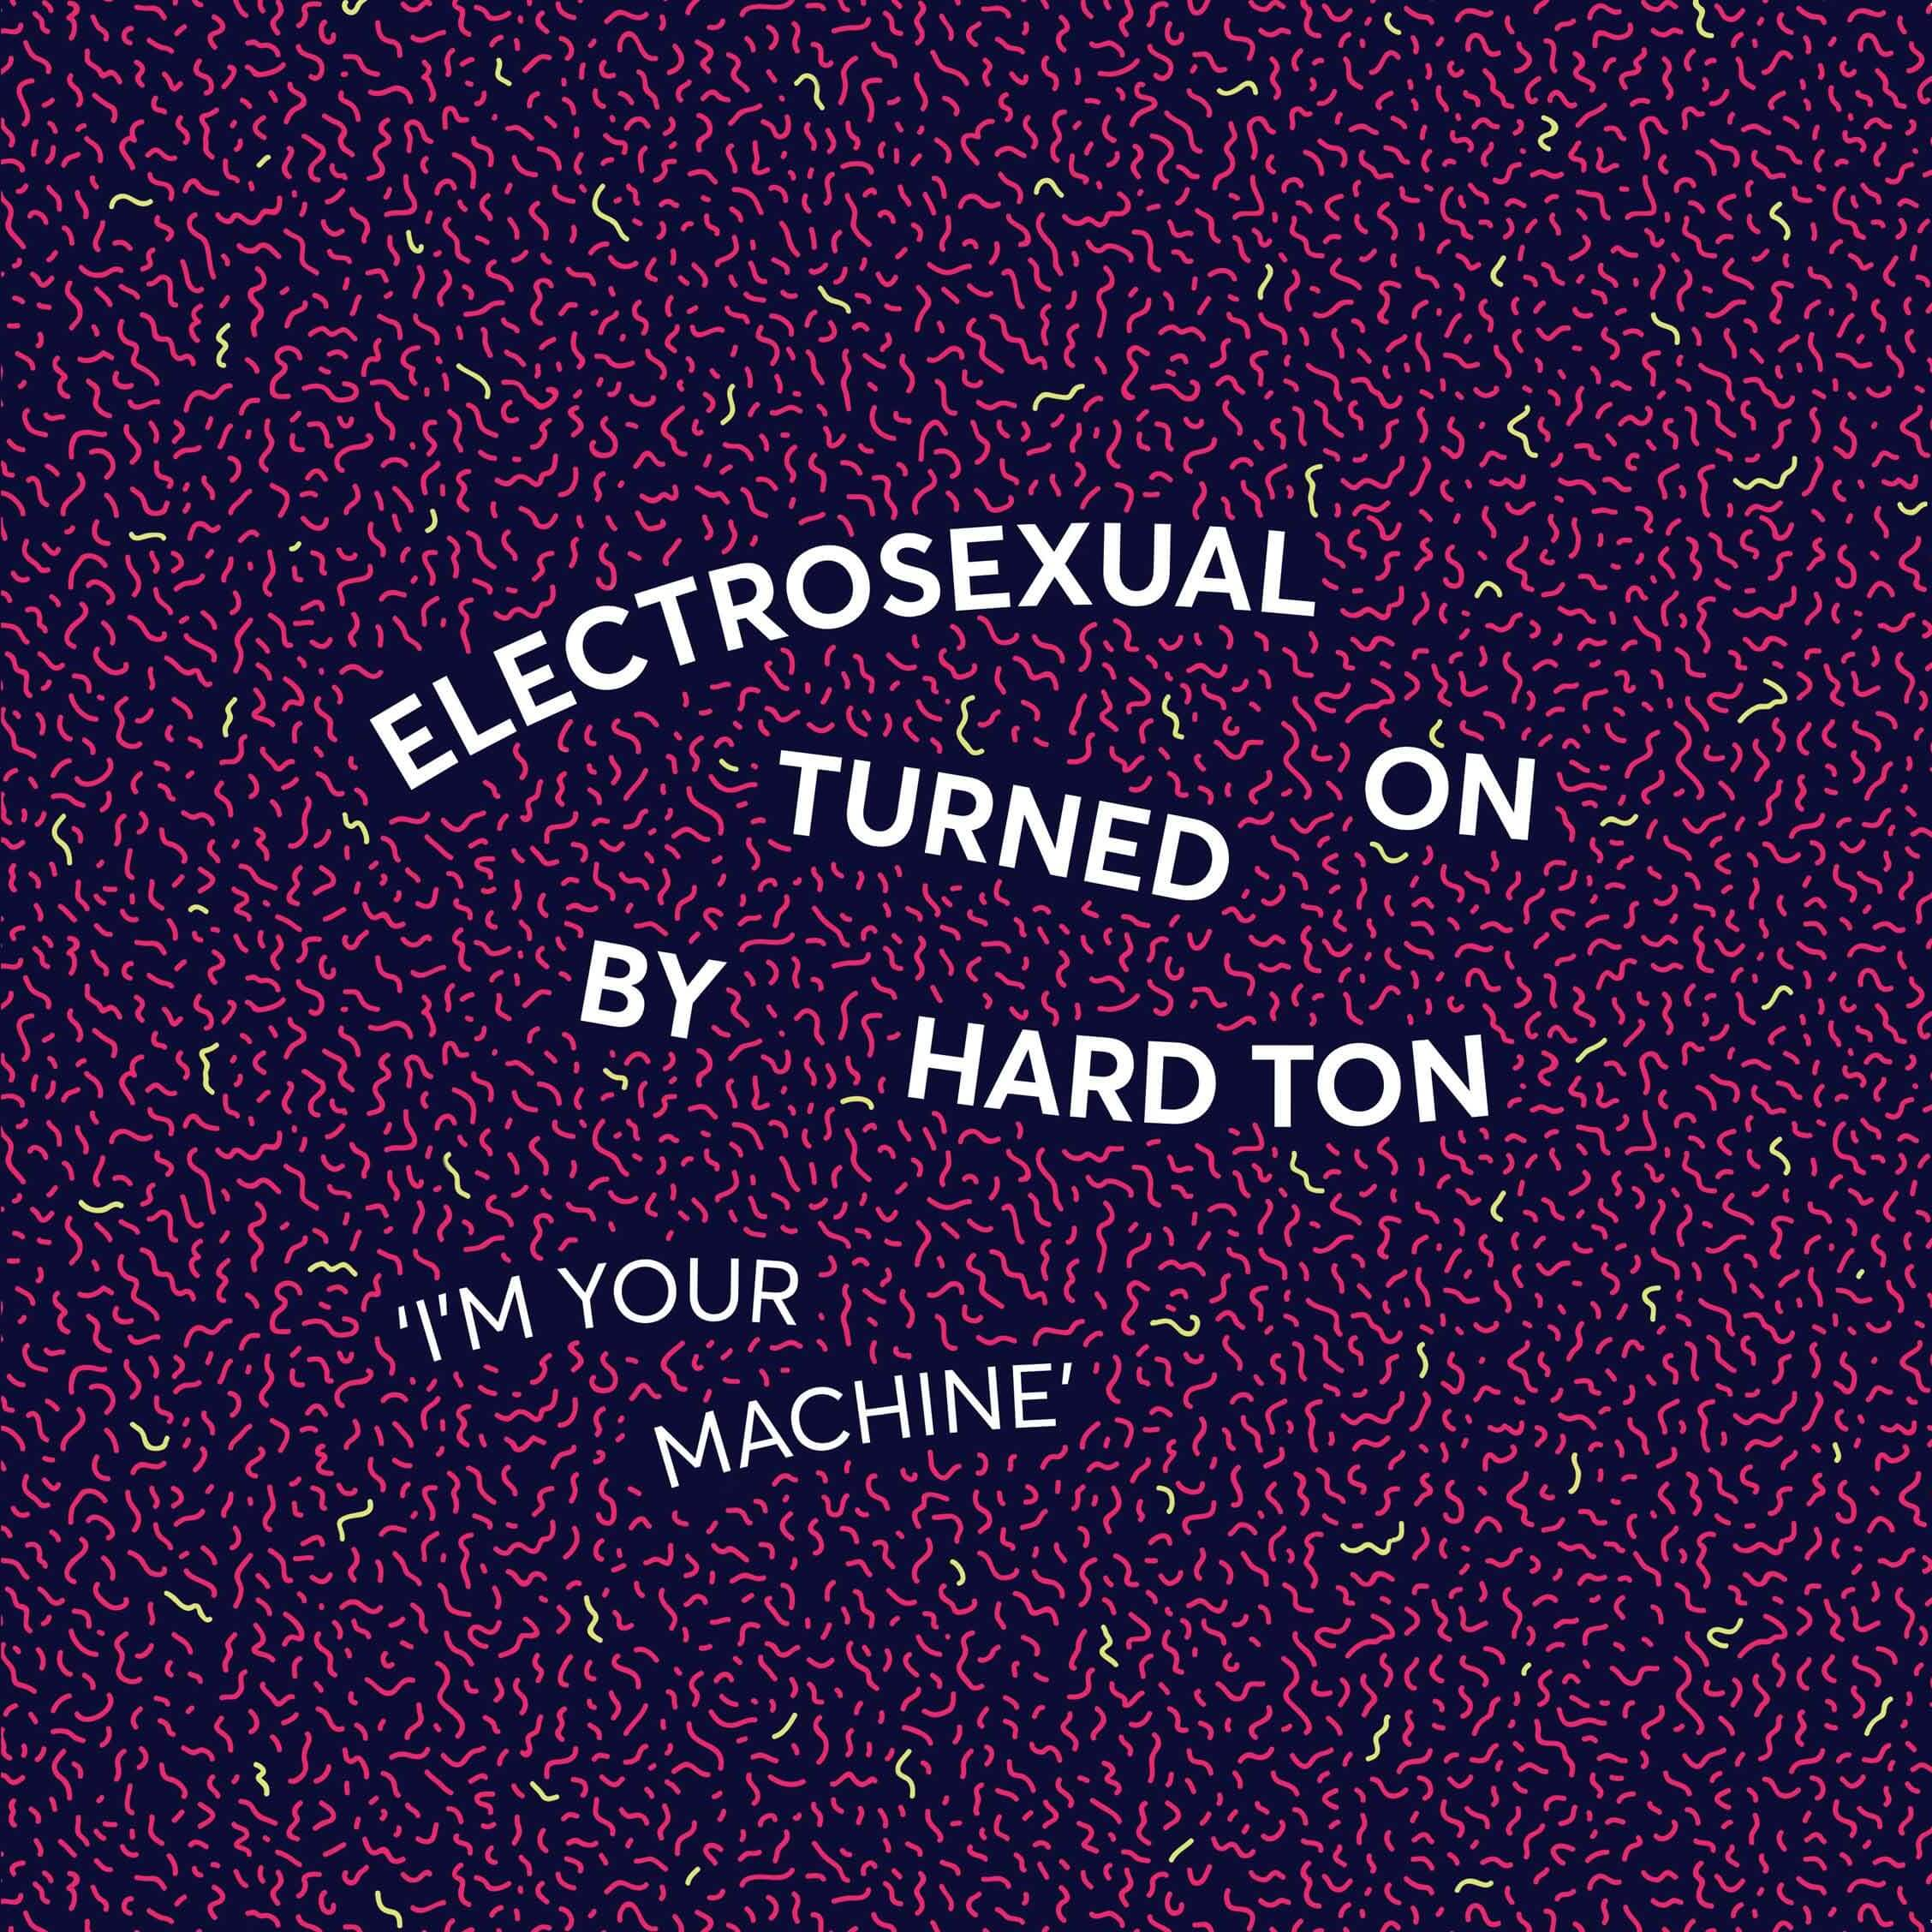 Electrosexual soundcloud